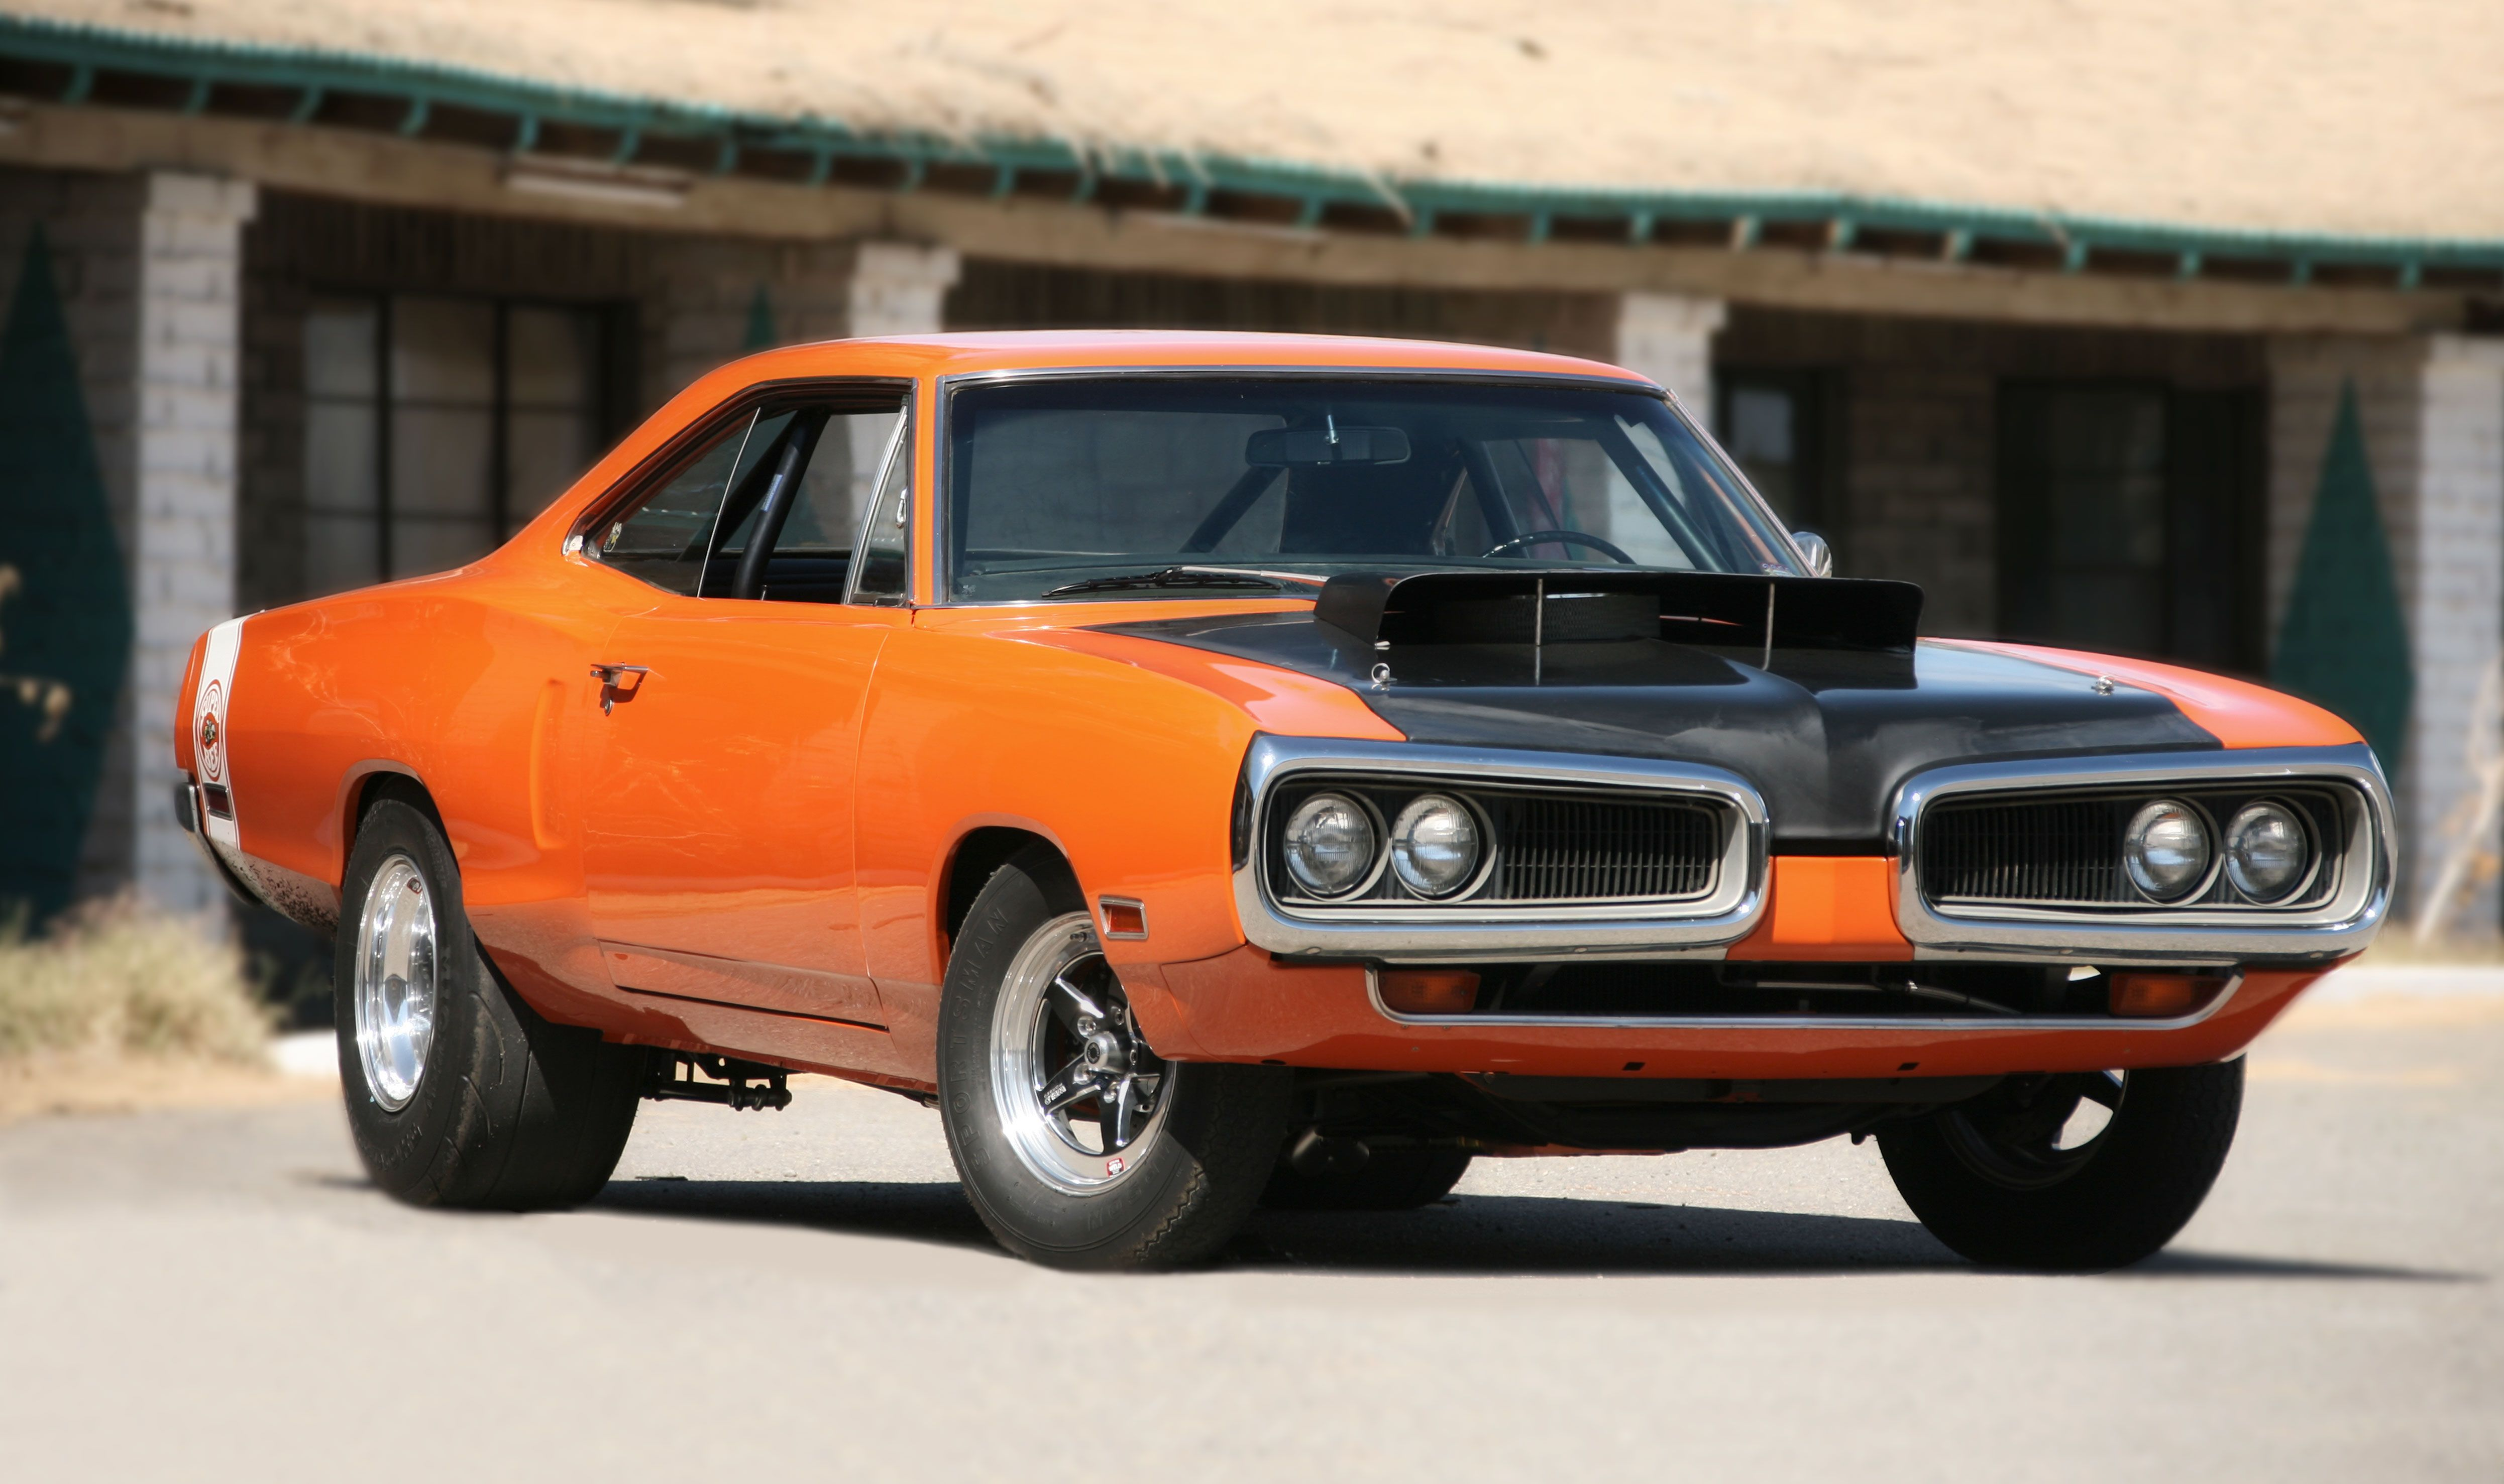 This 1970 Dodge Super Bee is Freiburger's first car